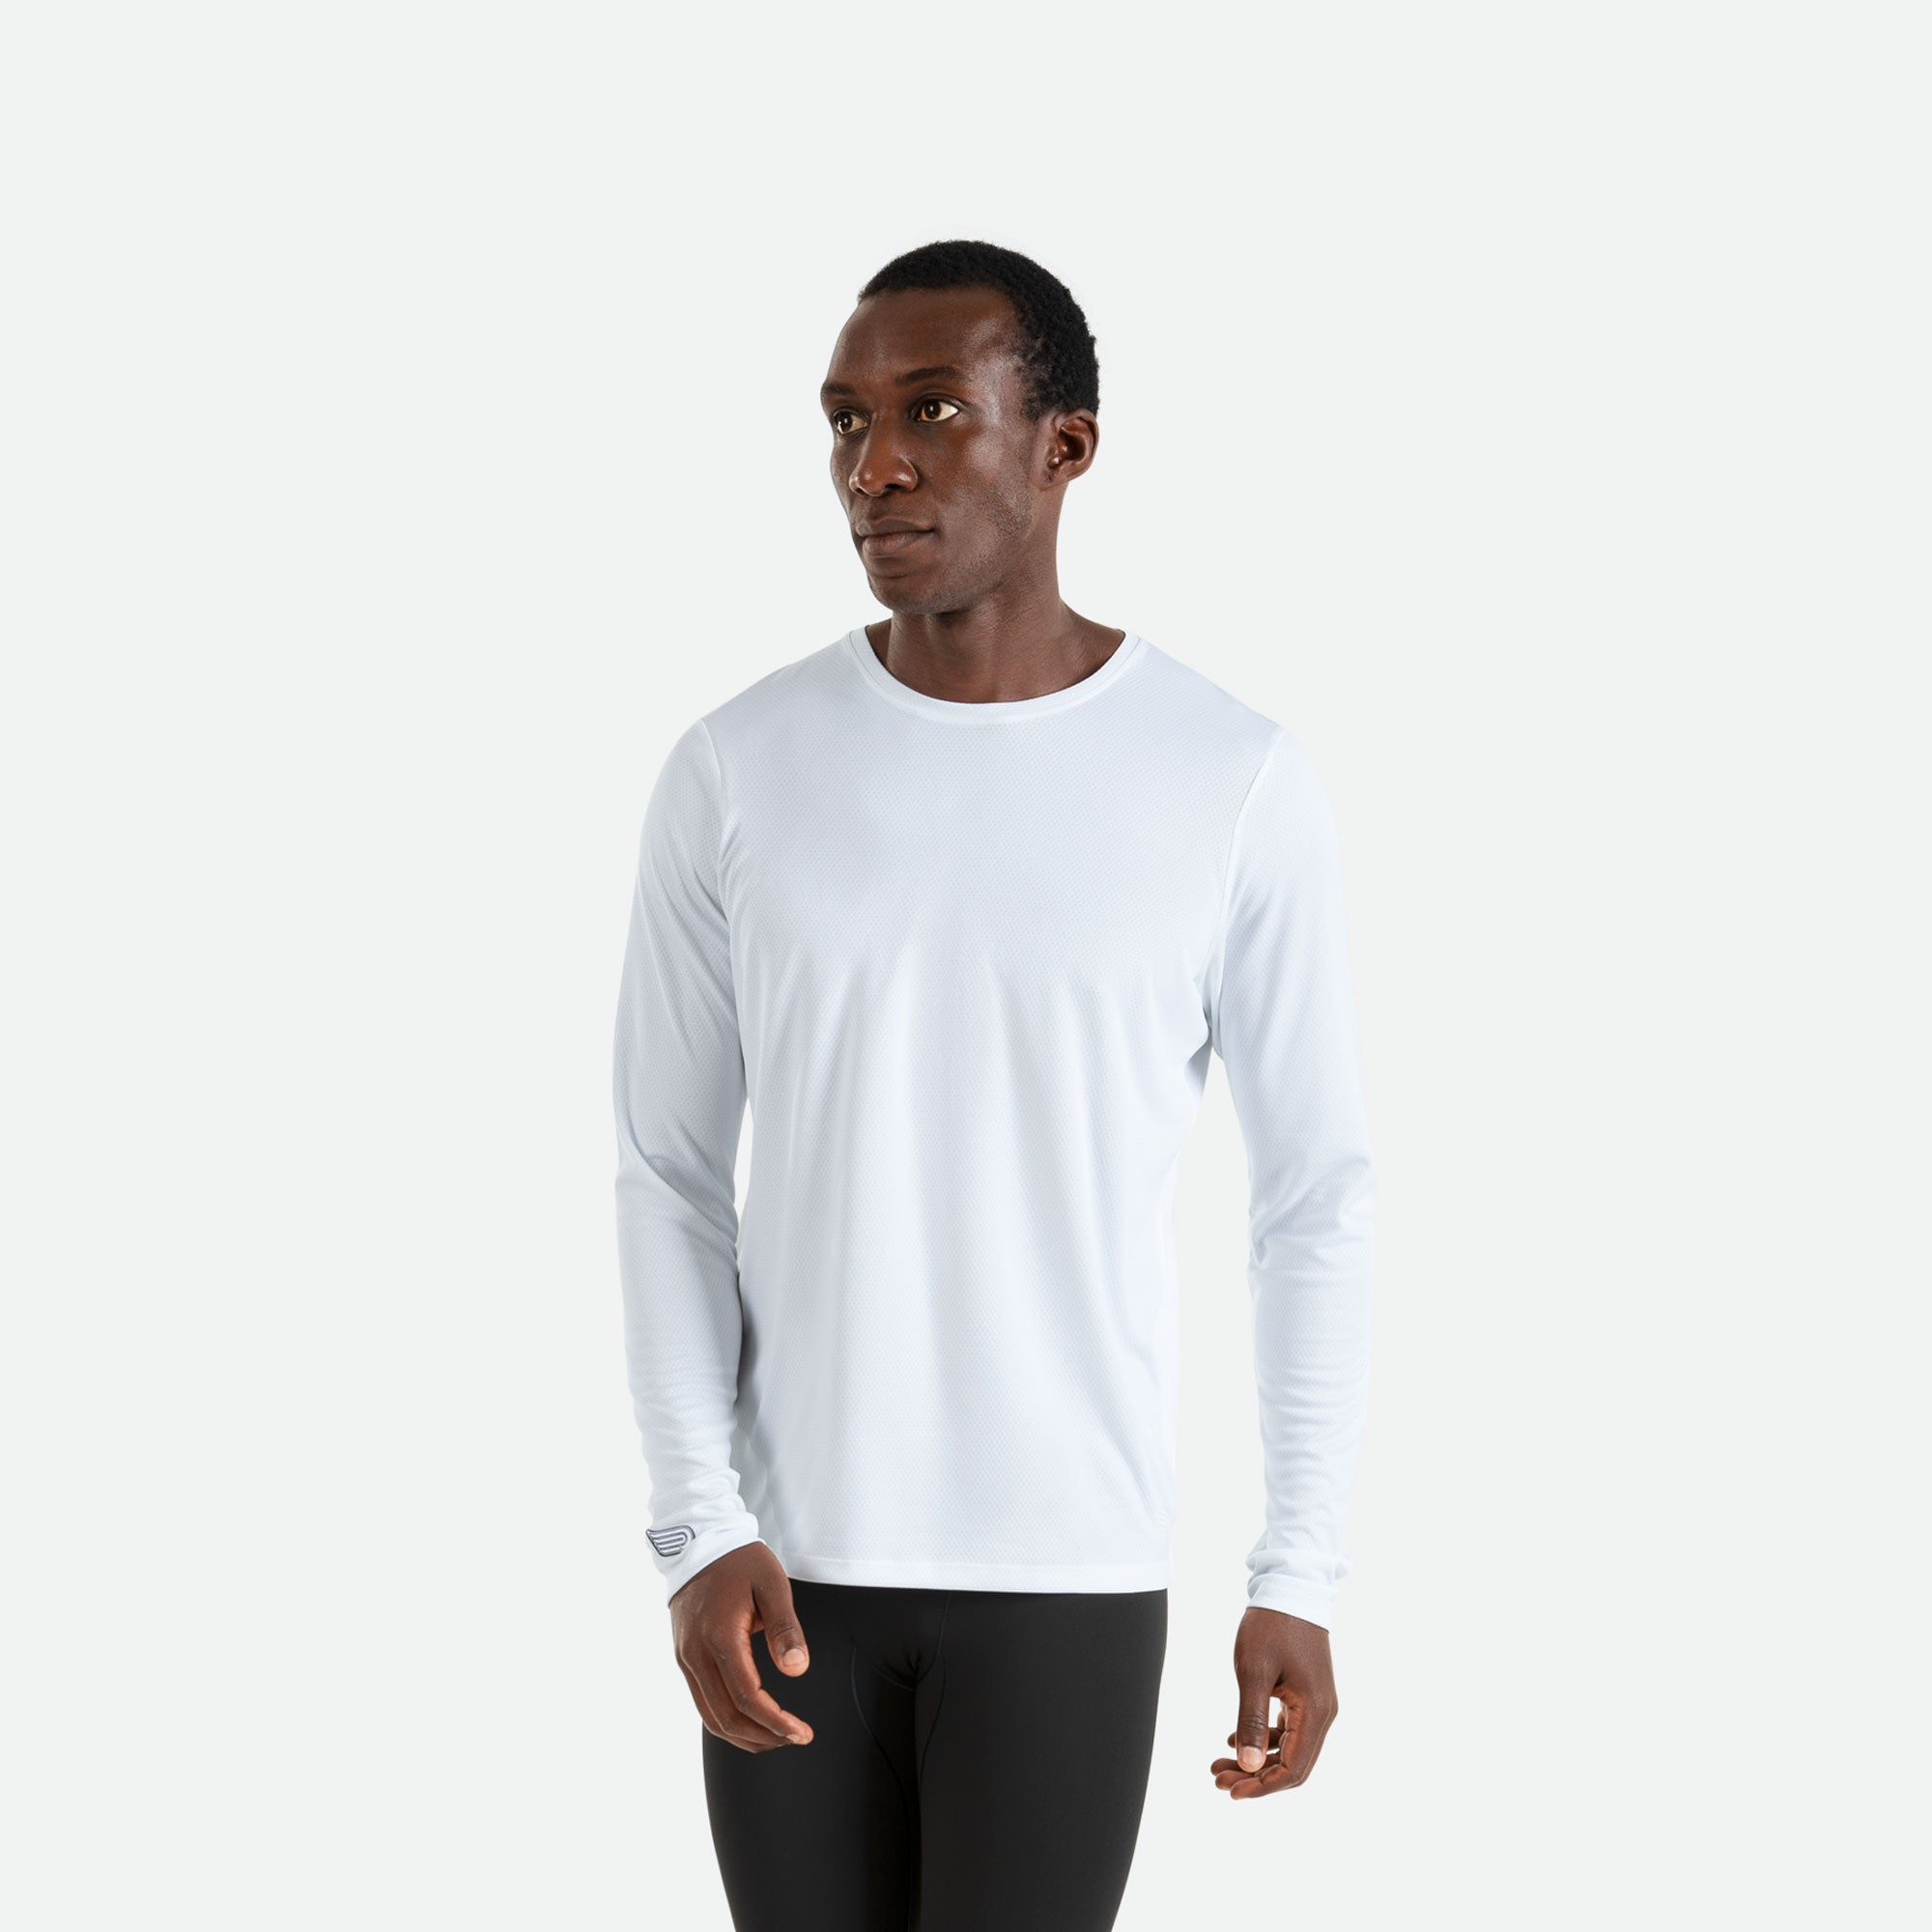 Our Pressio men's white Hāpai long sleeve t-shirt features EcoTECH MF fabric which has dual filament recycled polyester yarns from Unifi for superior moisture control to keep you dry.